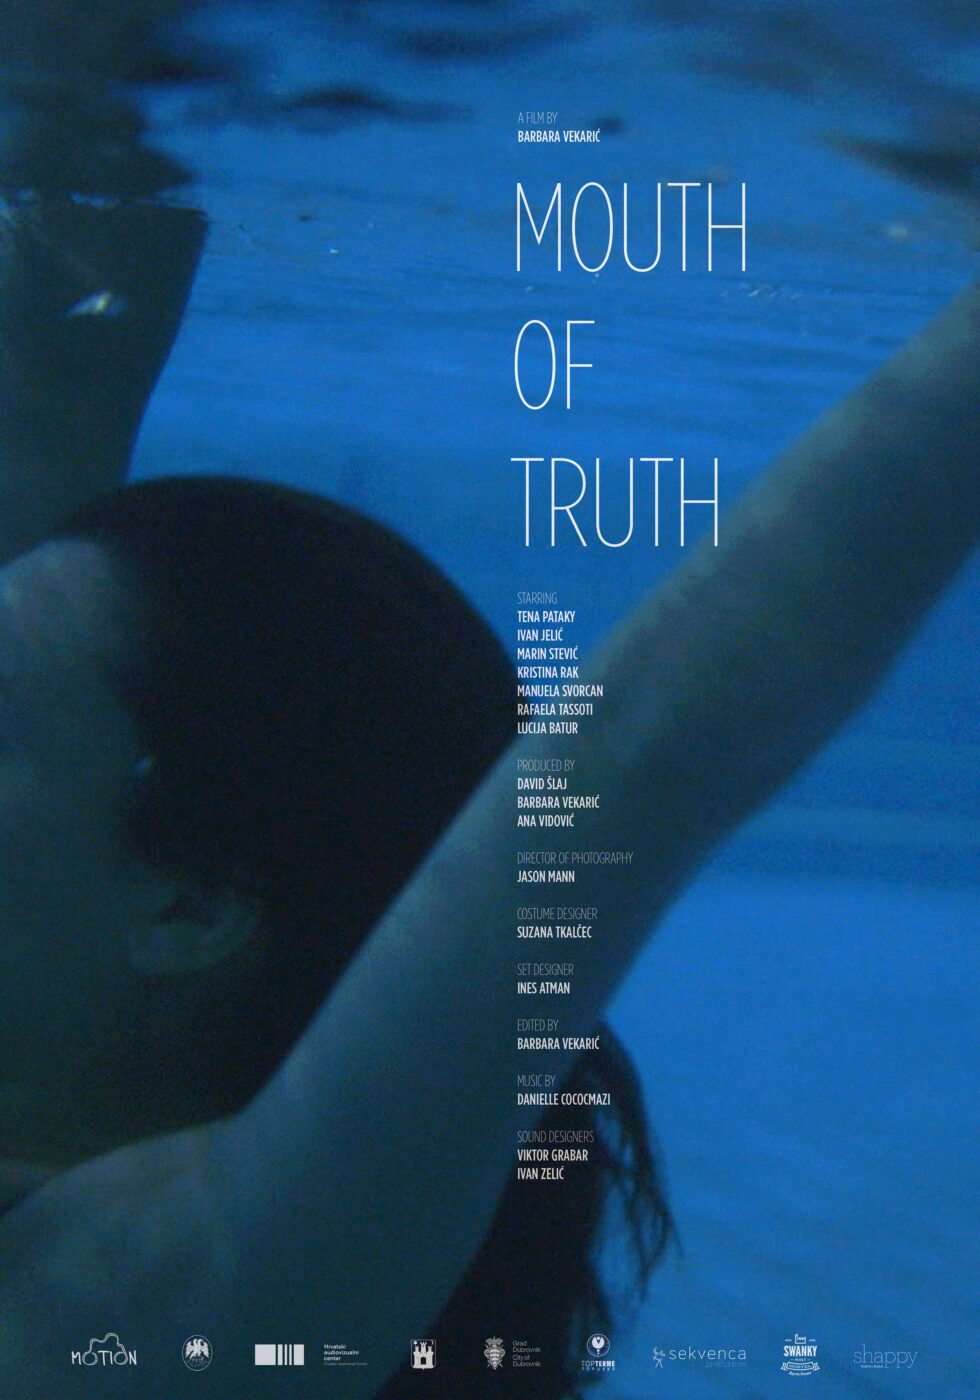 Mouth of truth